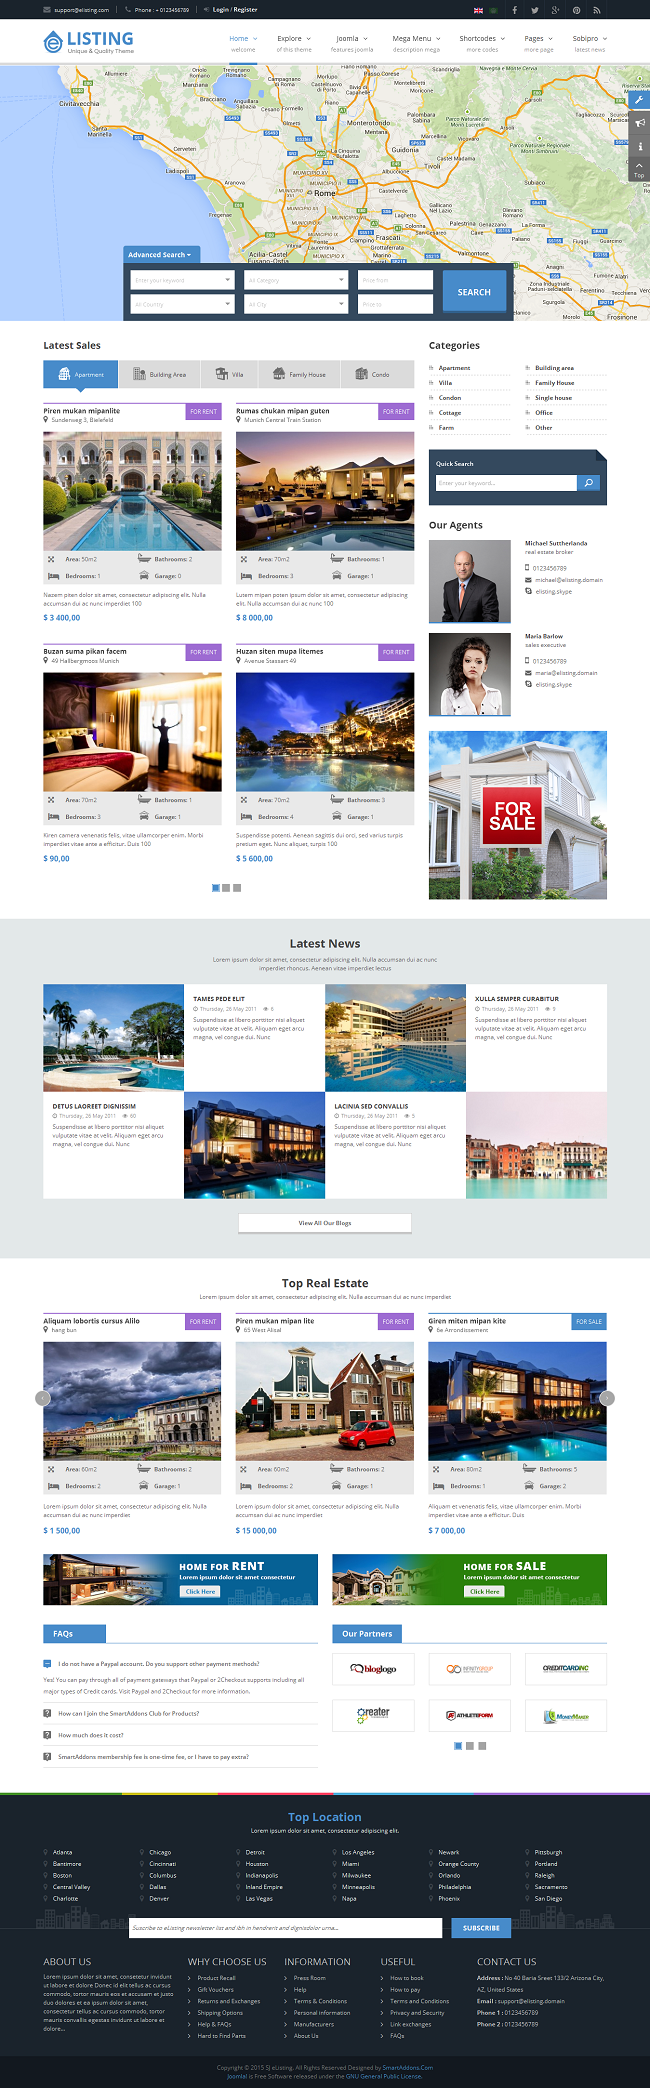 SJ eListing - Responsive Joomla Estate Template - 06_index-blue.png